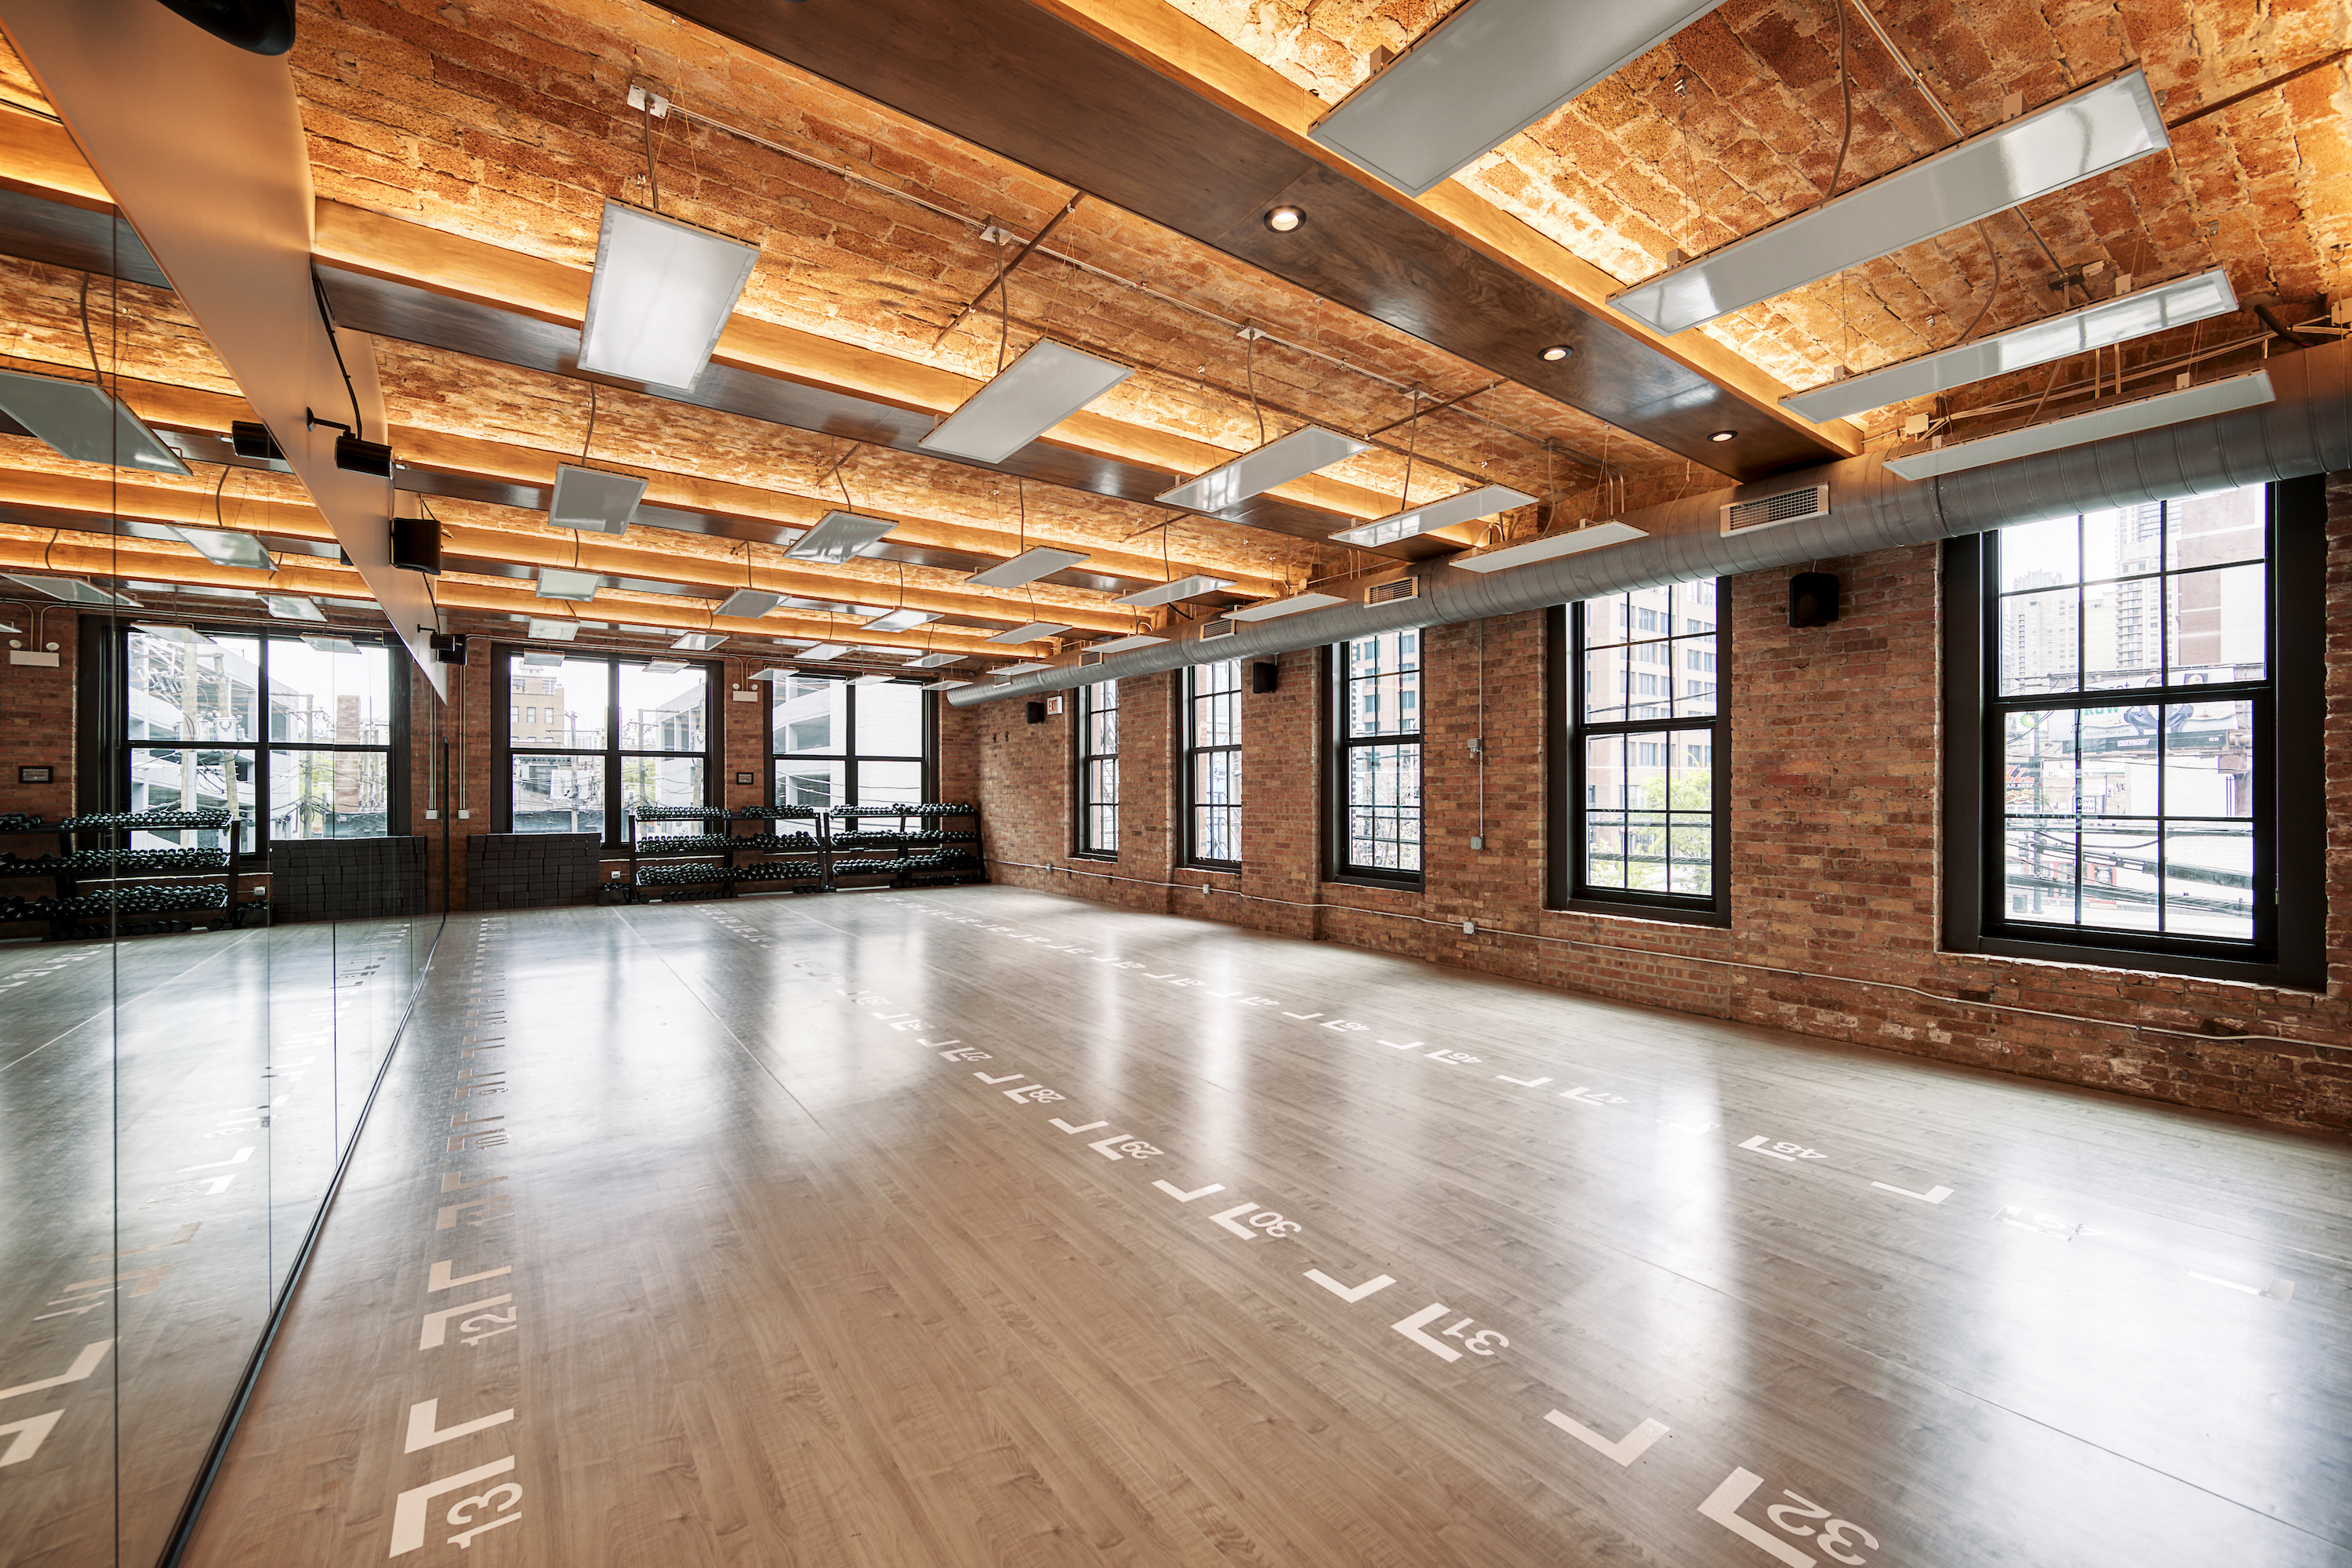 12 Amazing Yoga Studios In Chicago